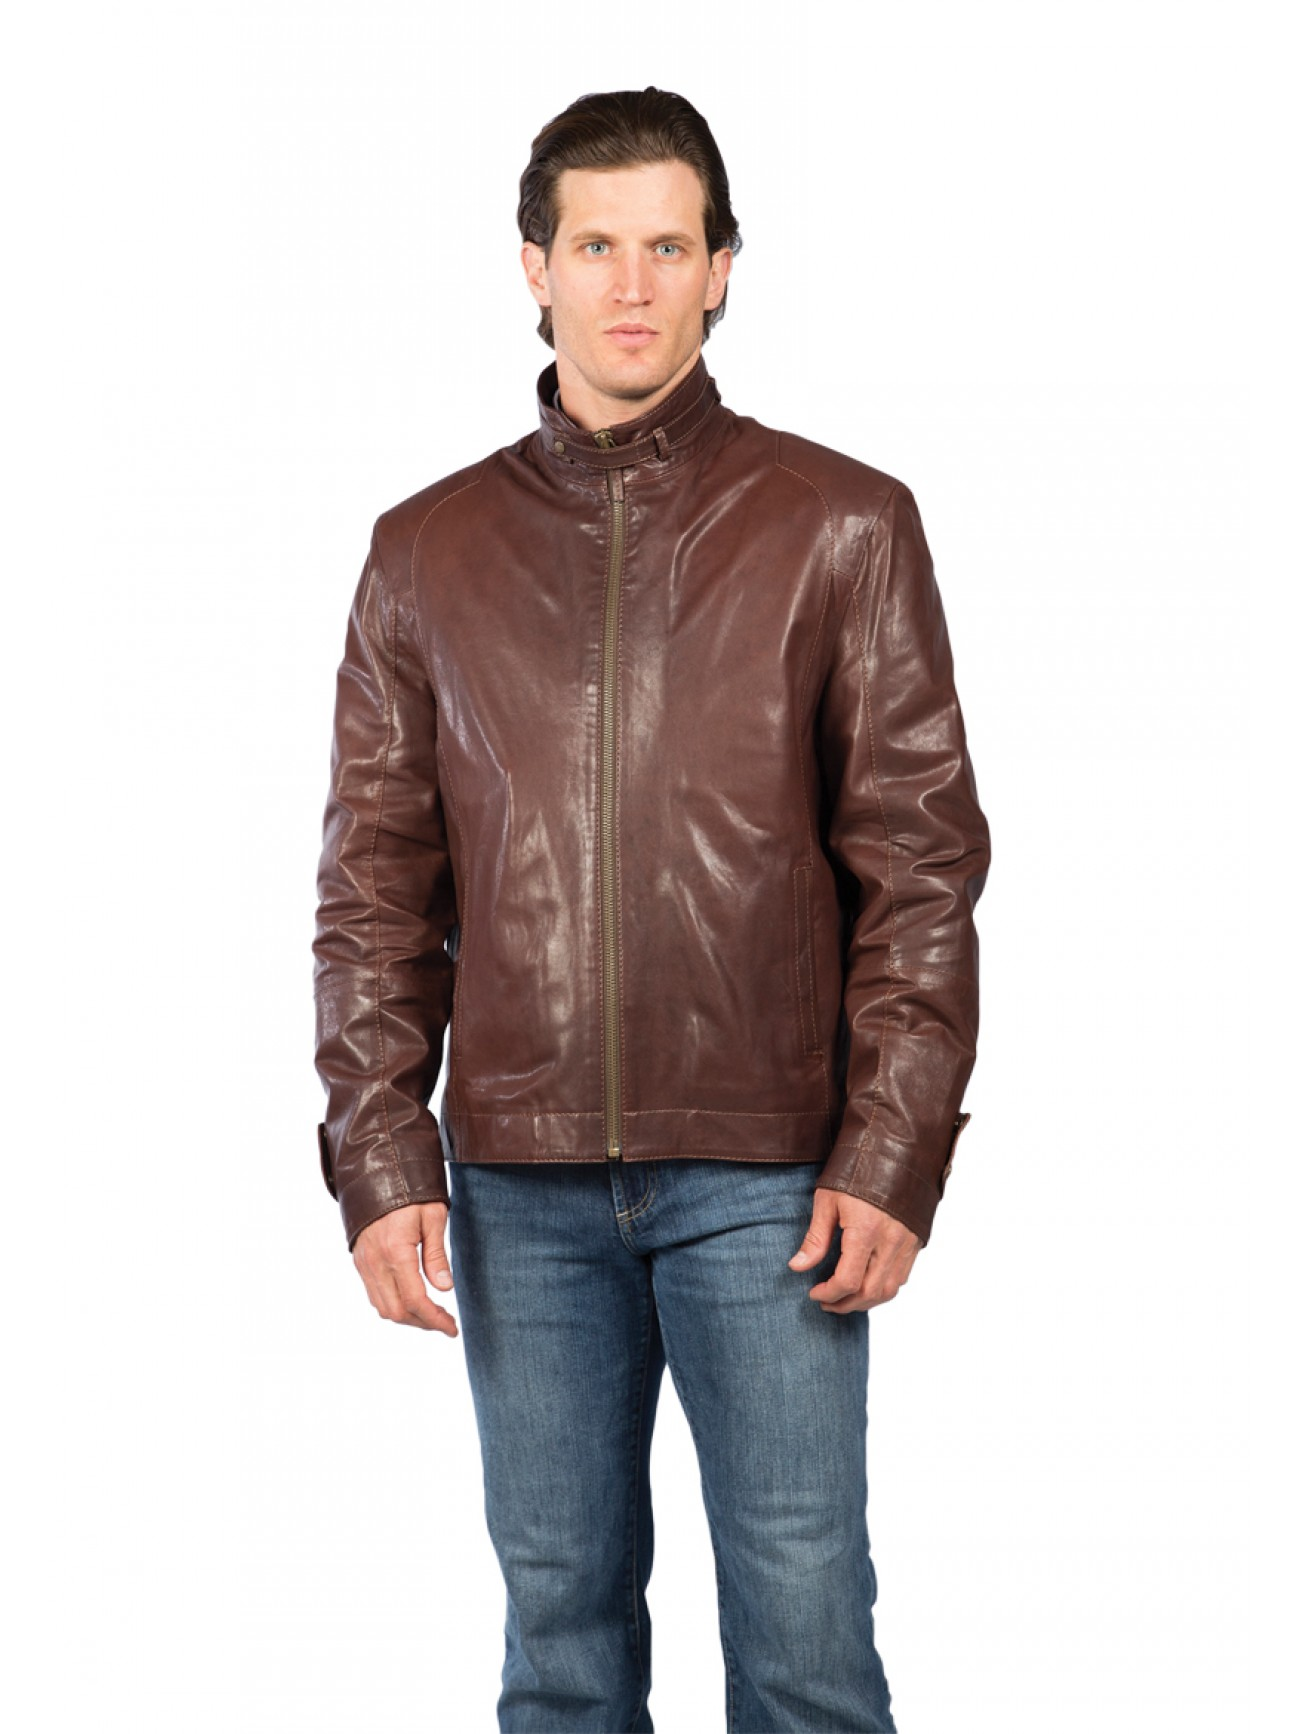 Men S Suits On Pinterest: Men's Lambskin Leather Jacket